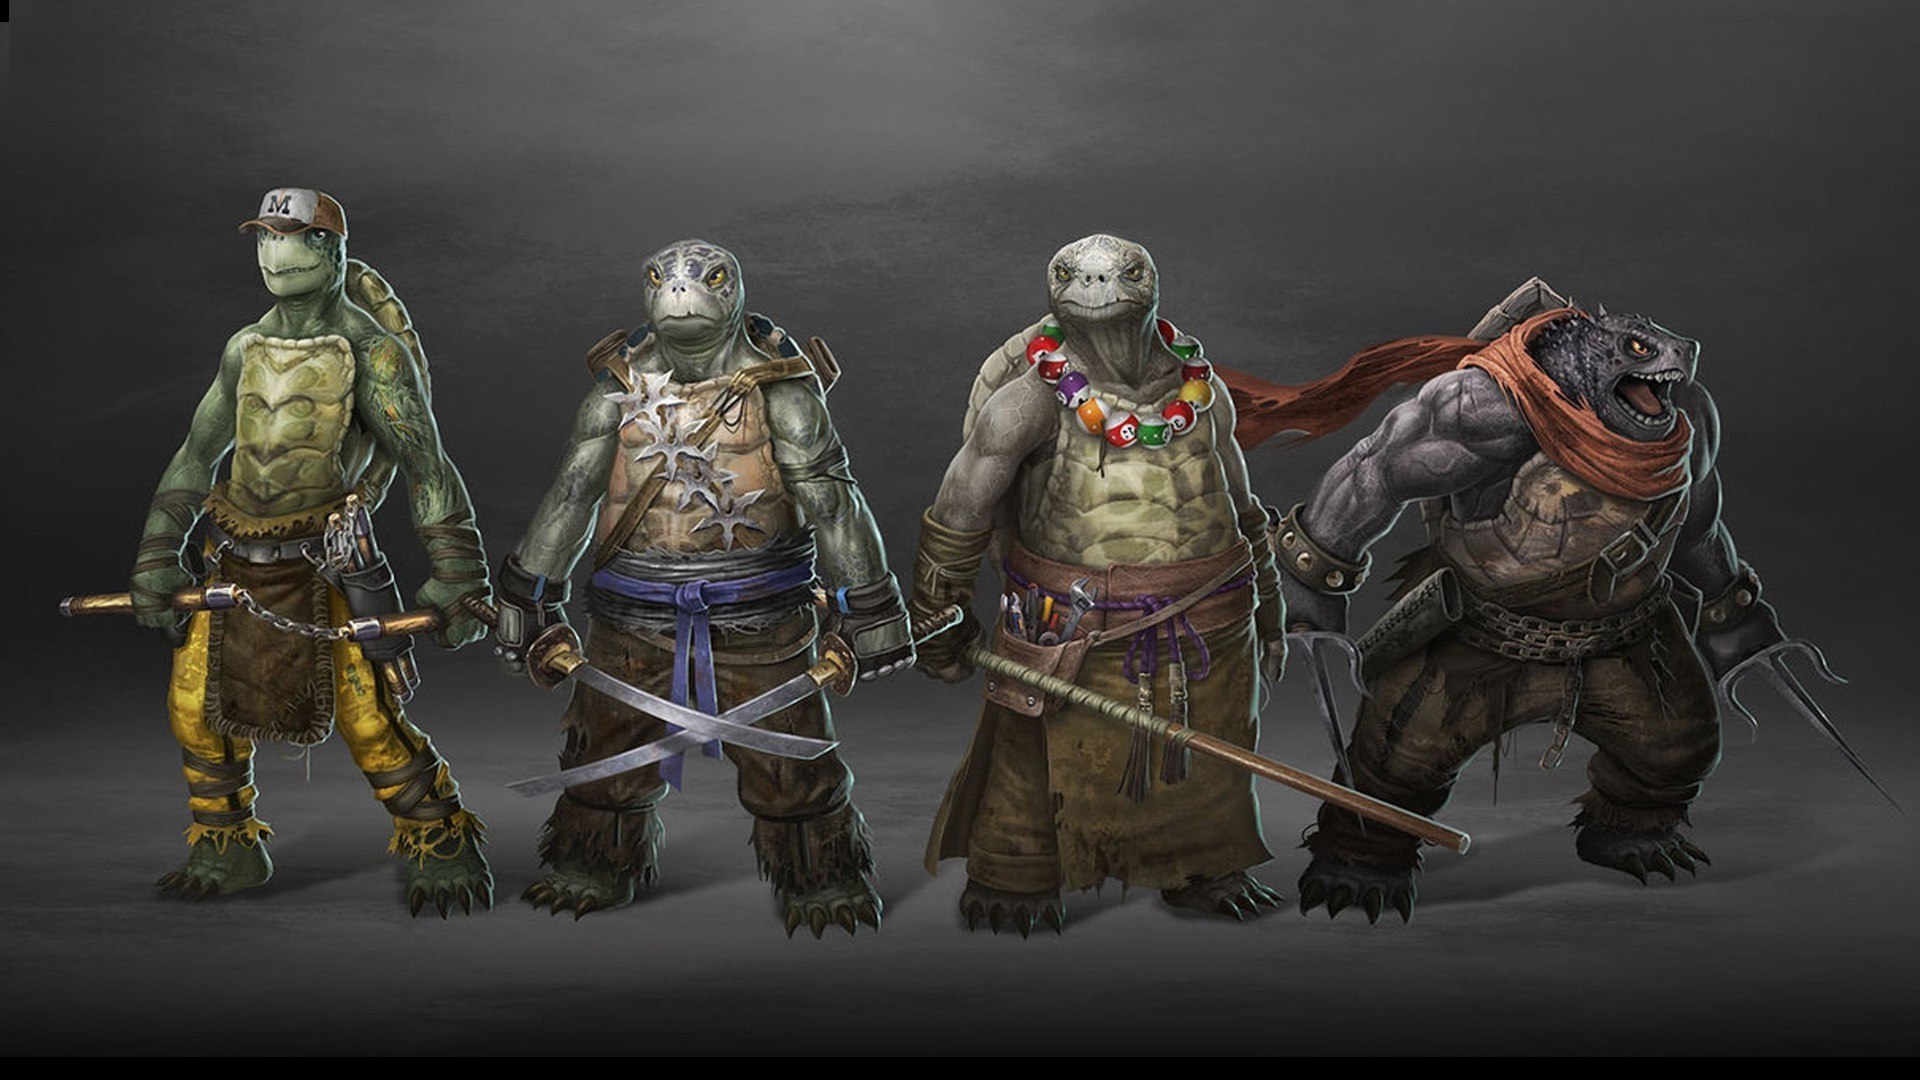 1920x1080 ... New 2017 Teenage Mutant Ninja Turtles Wallpape #30587 Wallpaper